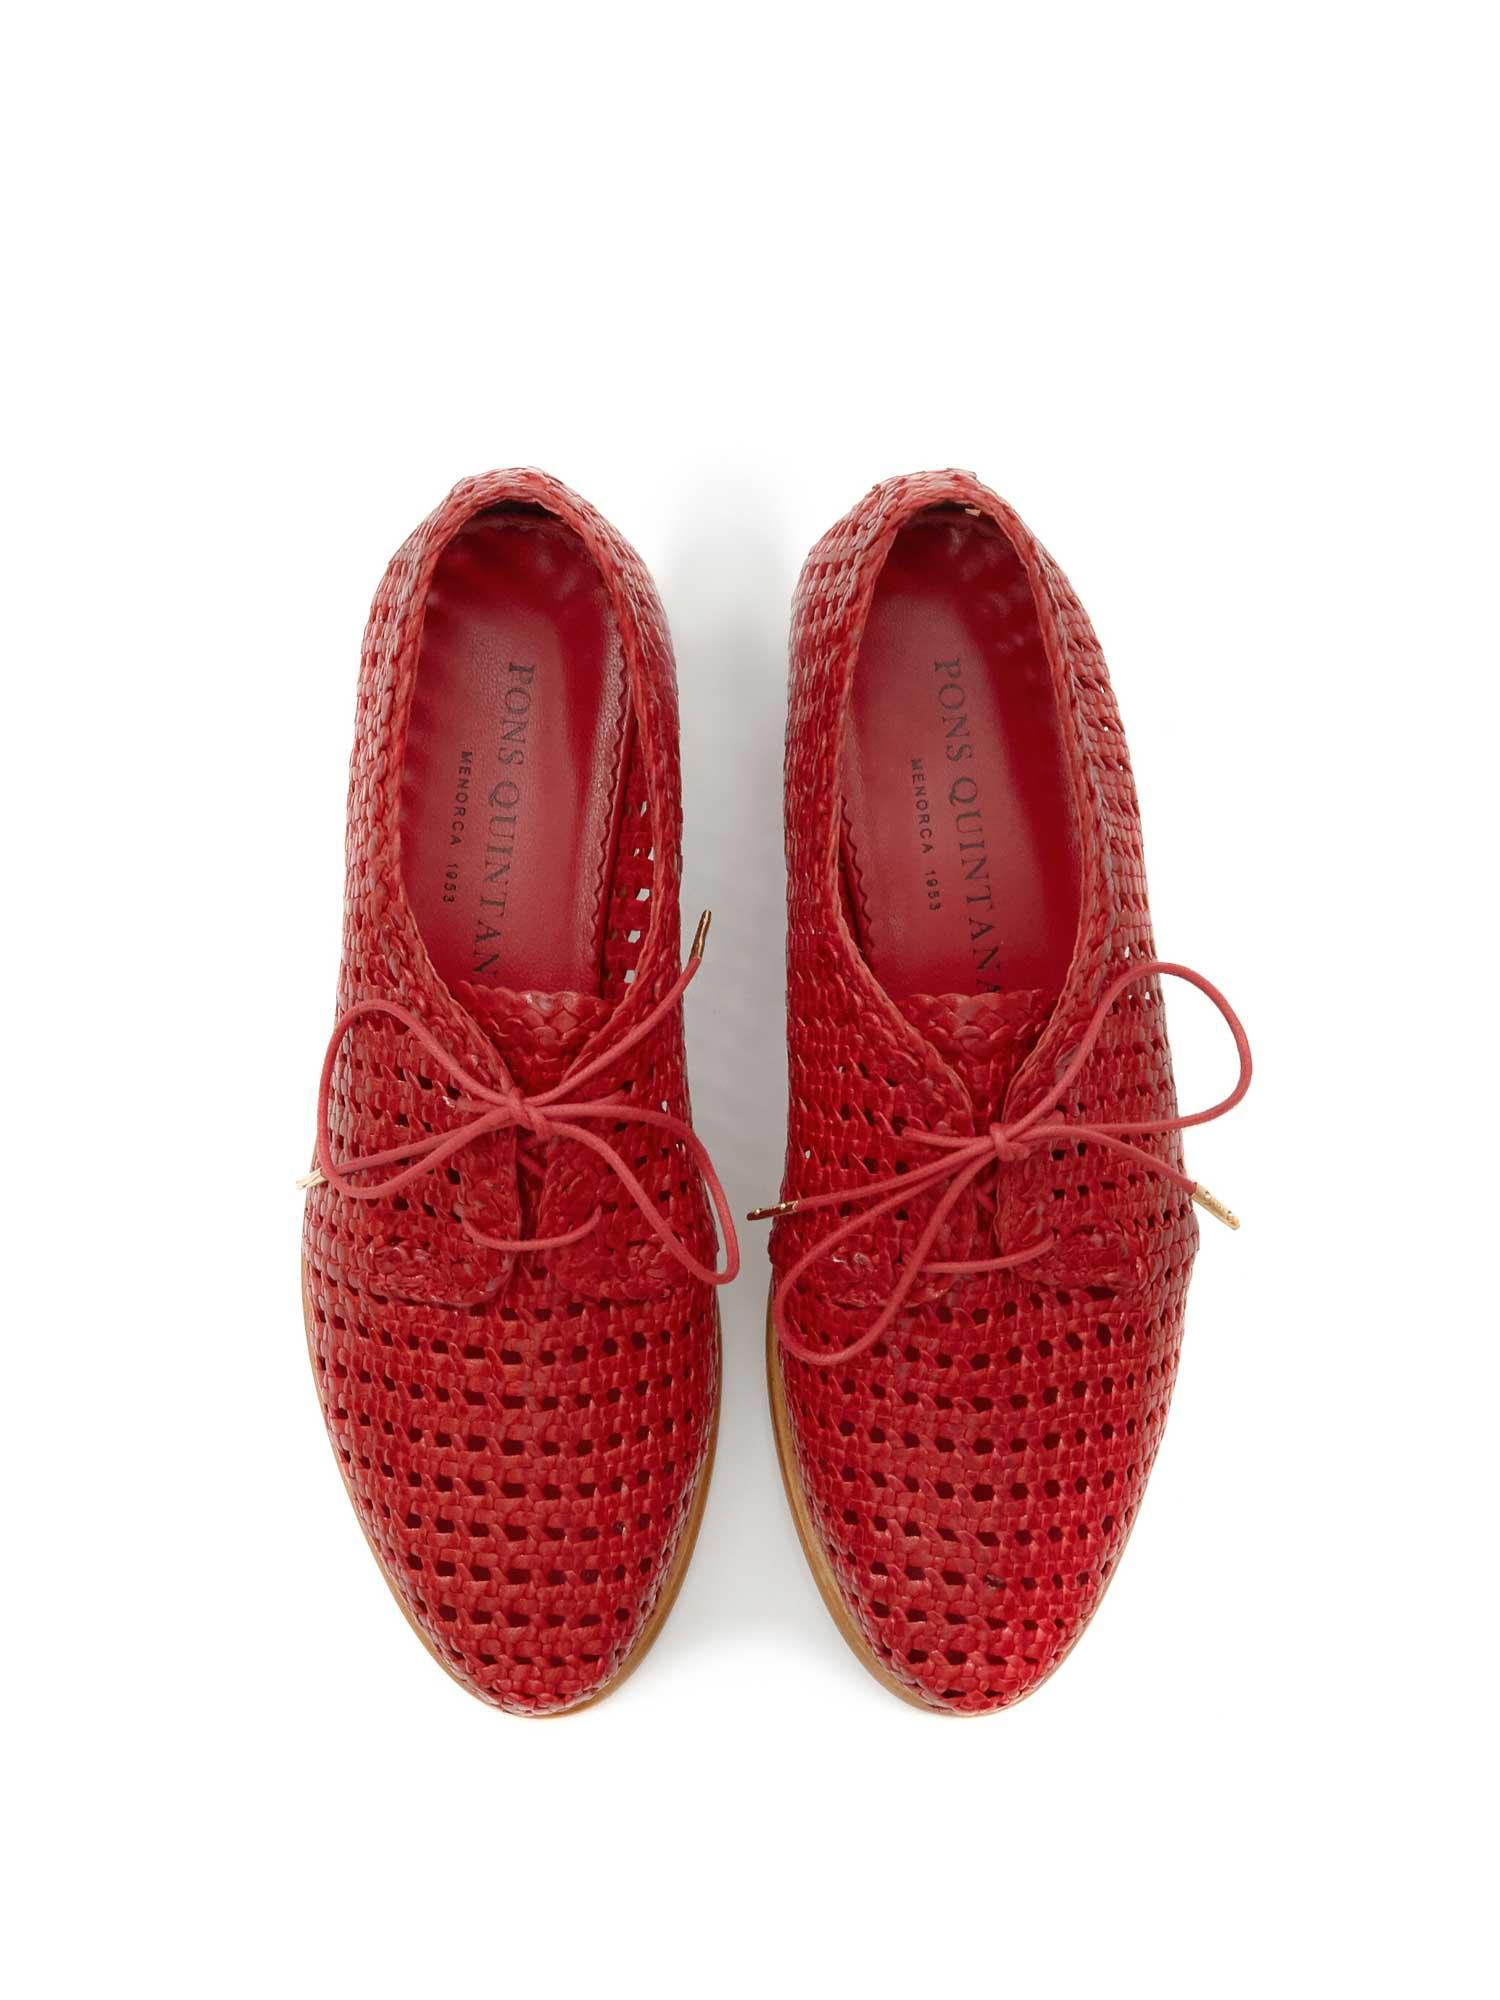 RED BRAIDED SHOE